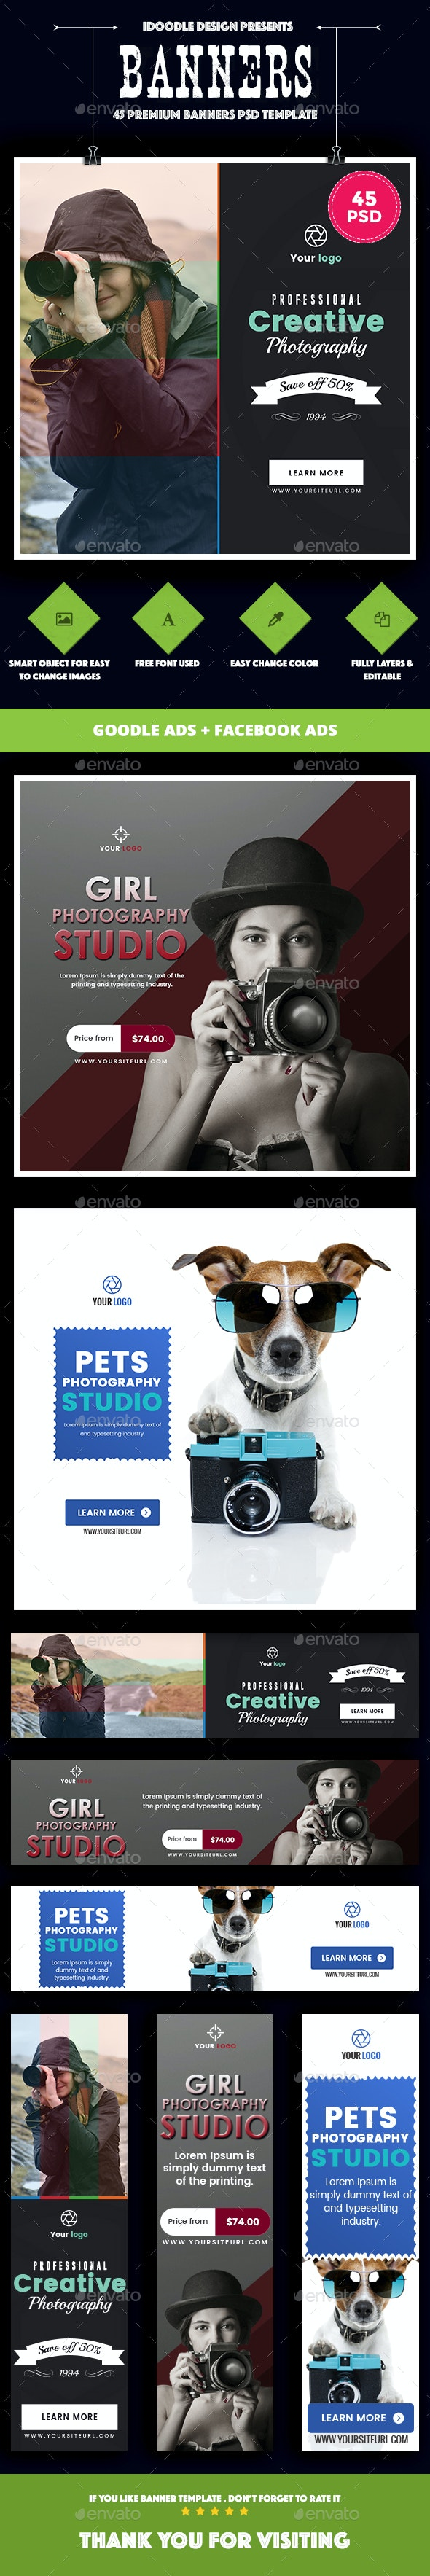 Bundle - Multi Concept Photography Banners Ads - [45PSD] - Banners & Ads Web Elements